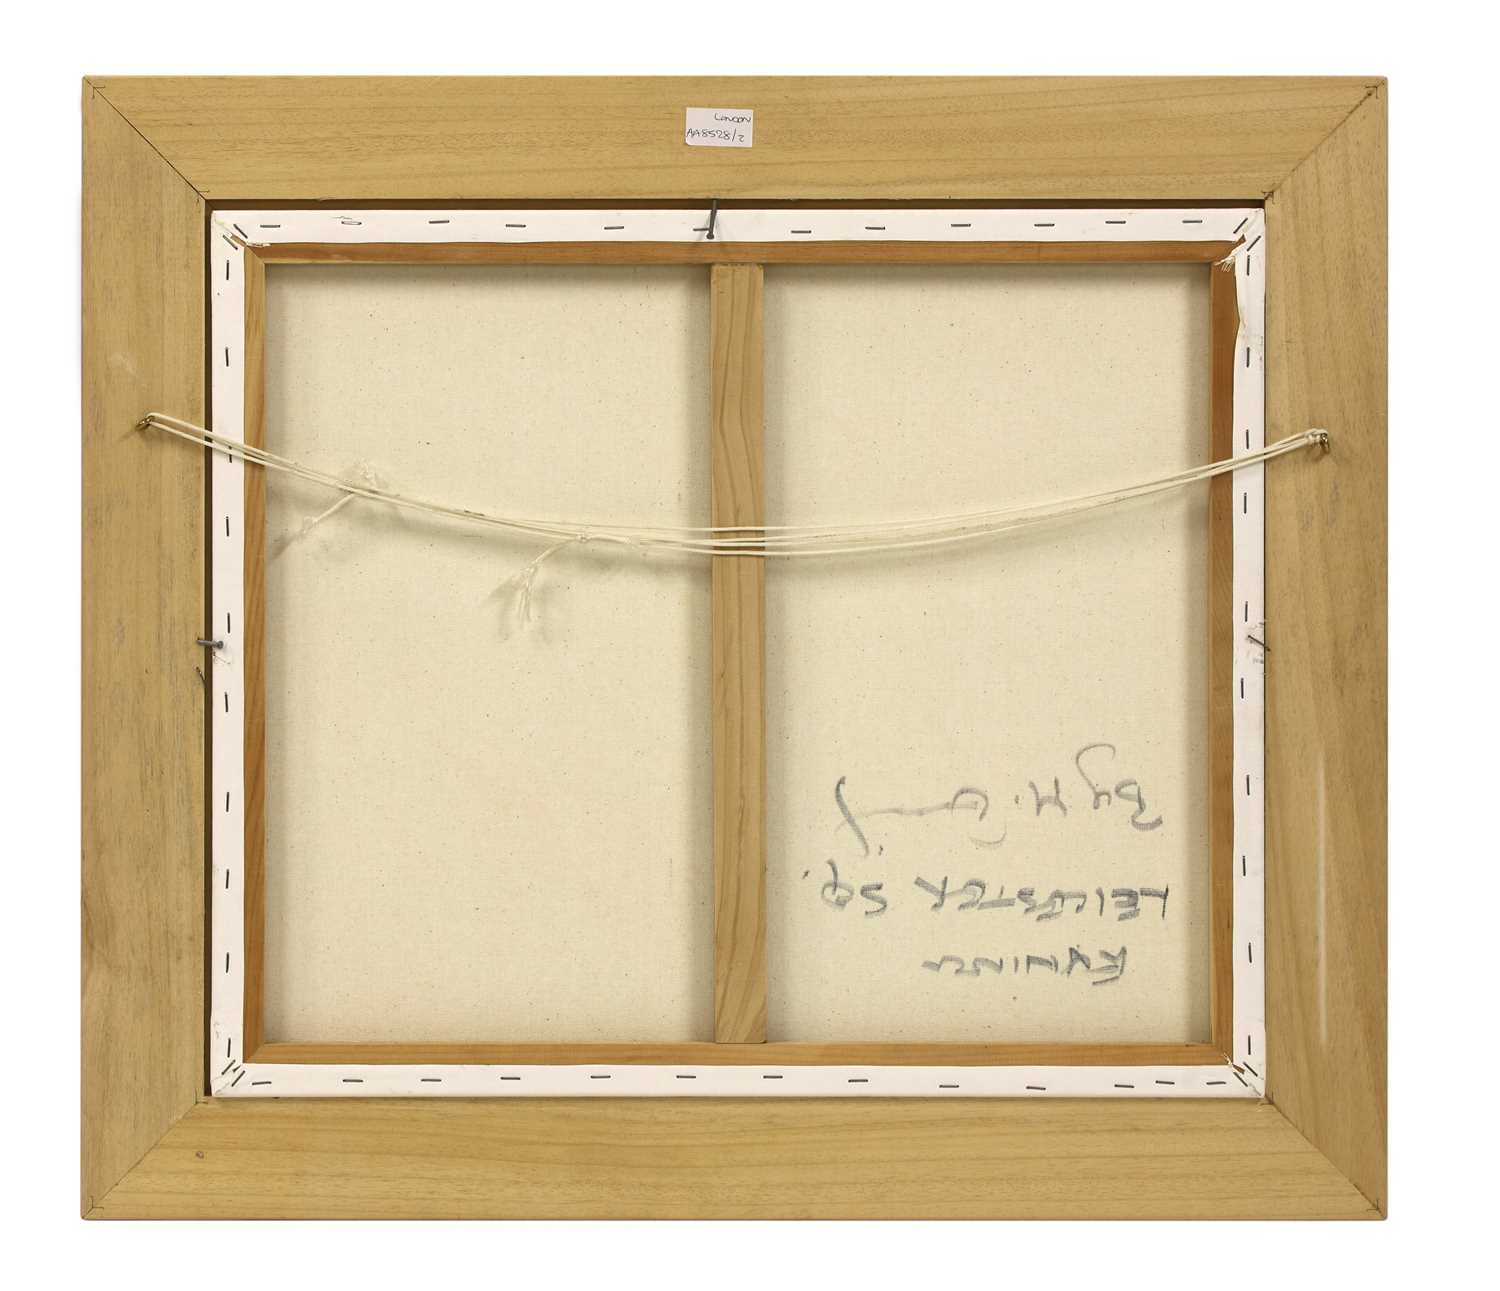 *MICHAEL QUIRKE (b.1946) - Image 4 of 4